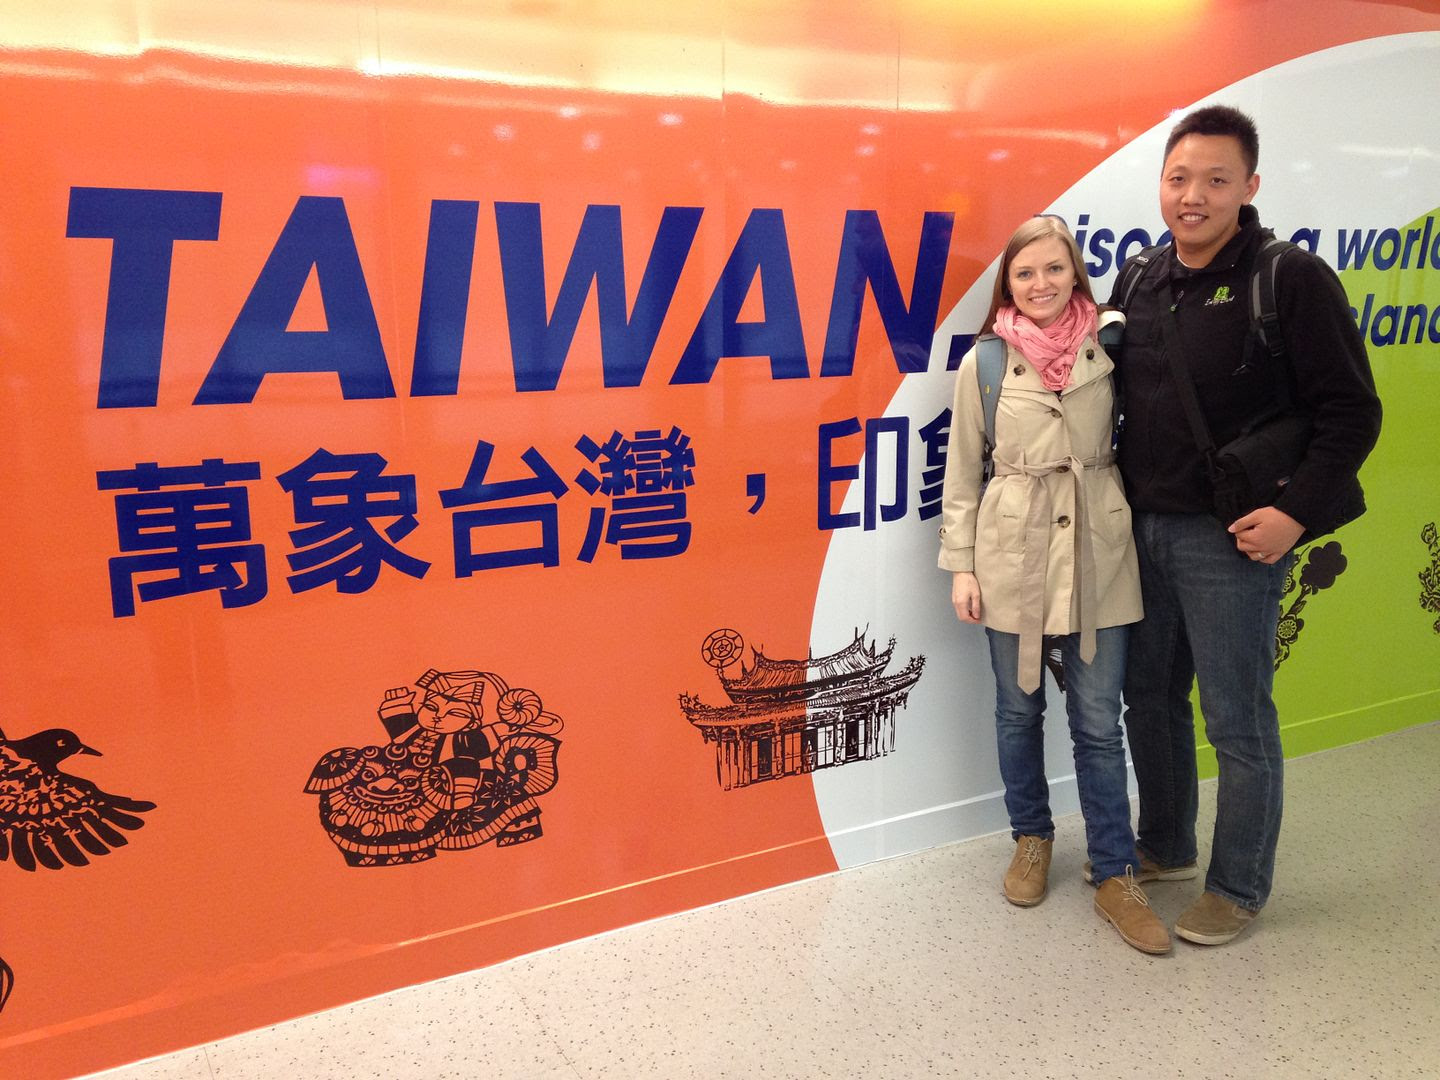 Taipei Airport--Michelle's 1st, Michael's Return to Taiwan After 17 Years photo 2013-12-251020IMG_4878_zps698f6119.jpg